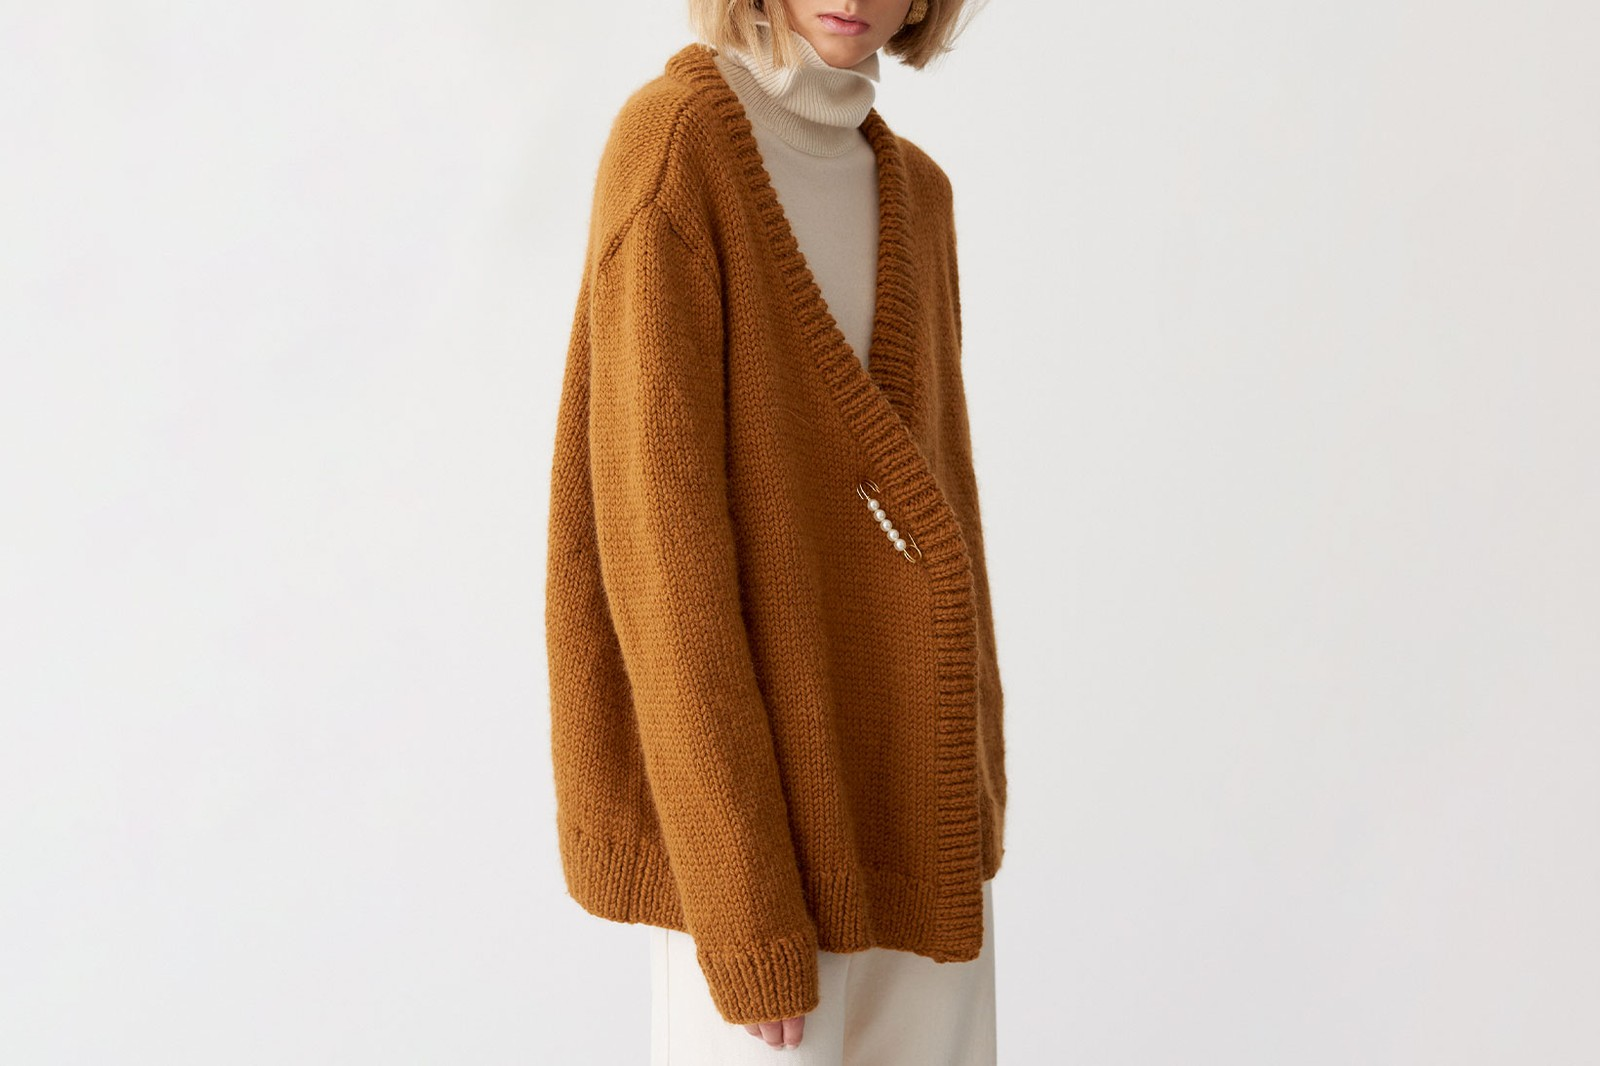 best sustainable eco-friendly knitwear brands sweaters cardigans wool and the gang diy craft knitting